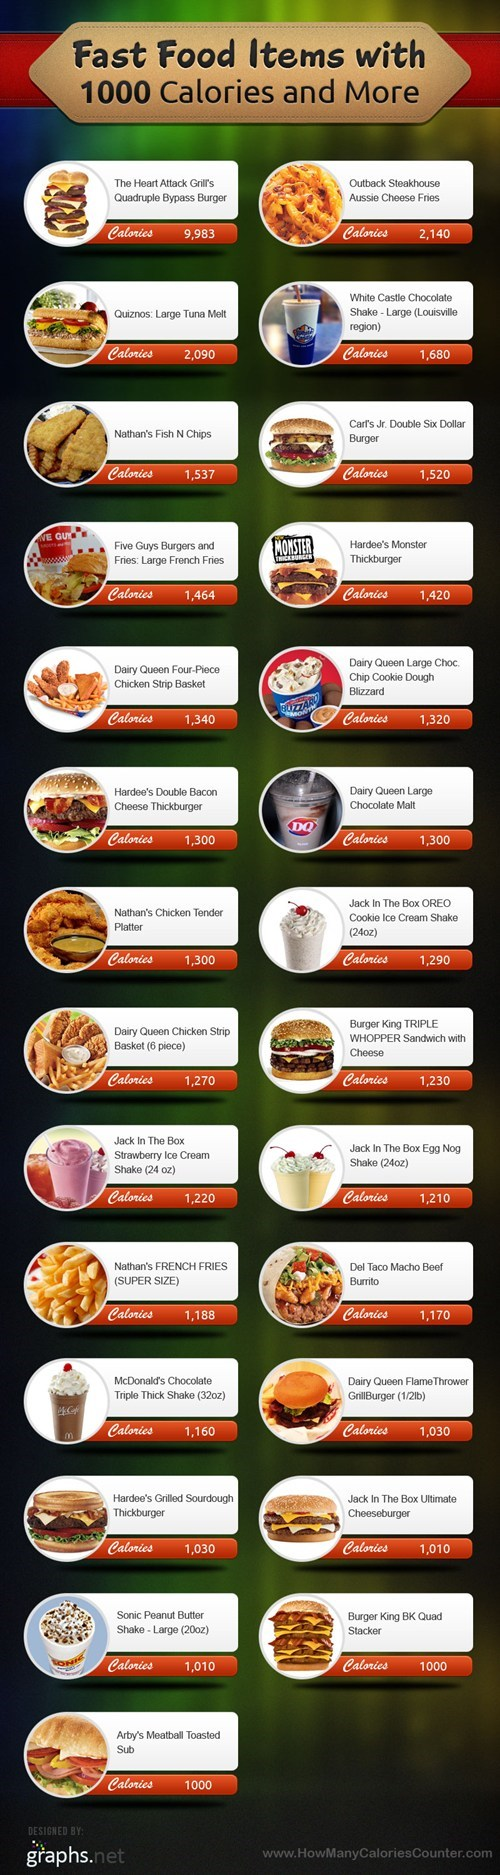 calories health obesity infographic fast food - 6889786624